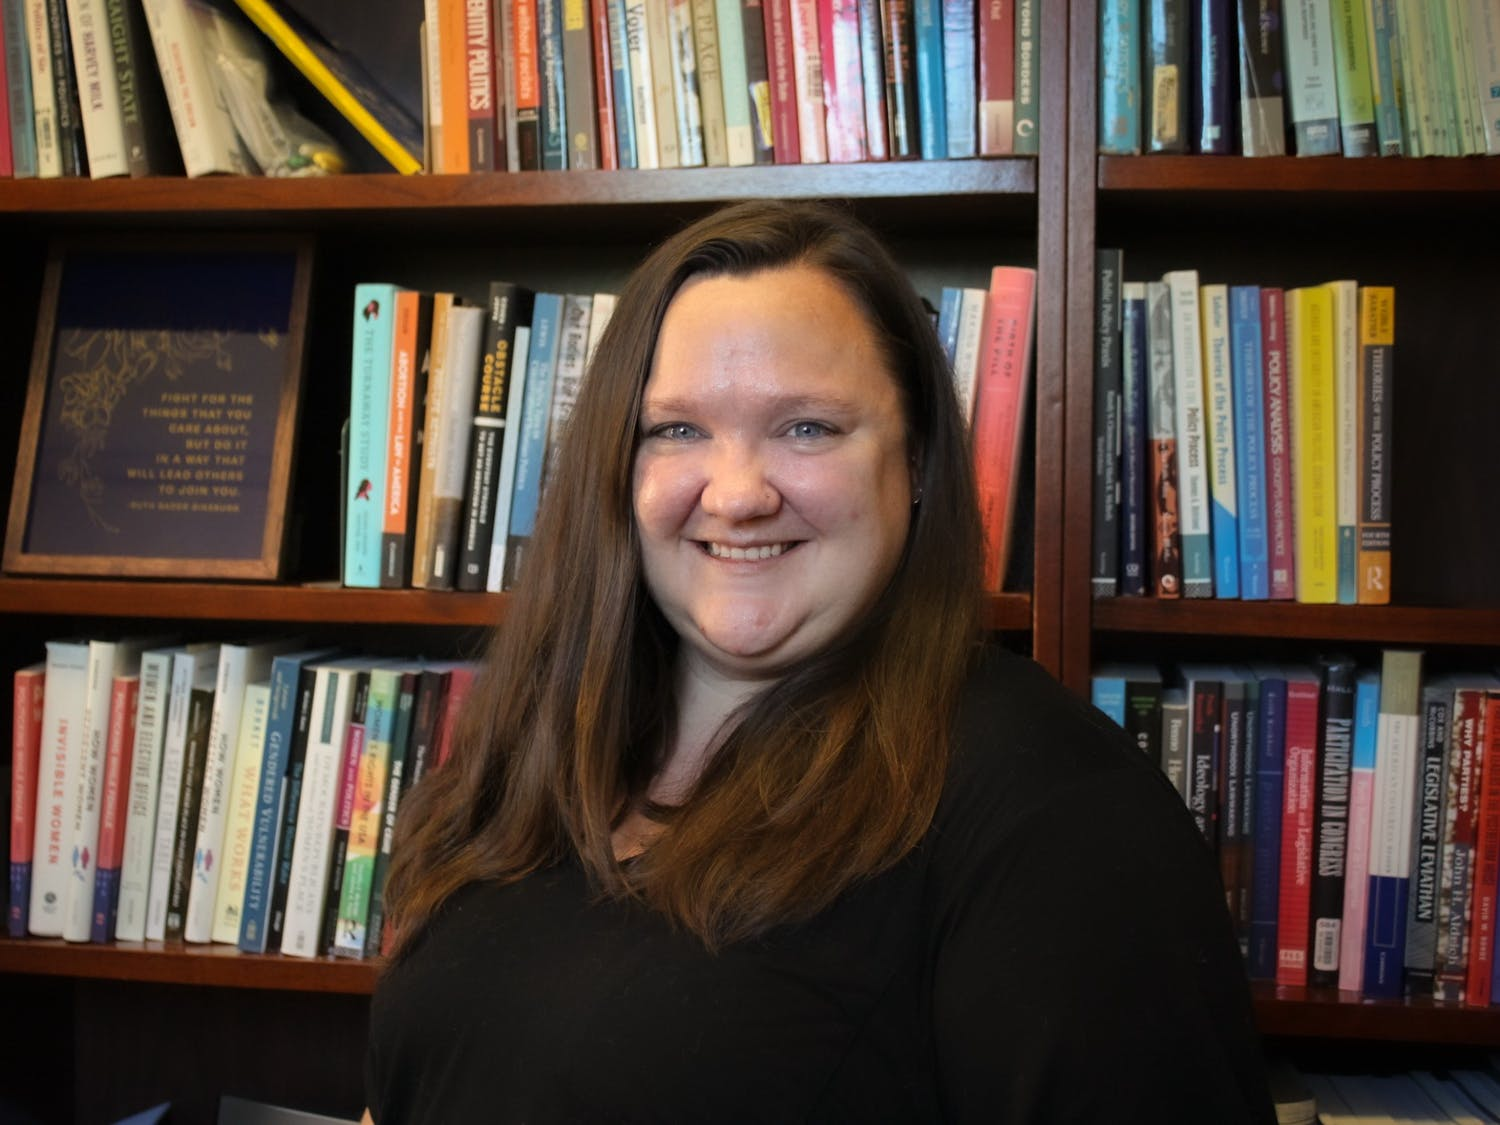 Rebecca Kreitzer is an associate professor of public policy at UNC, interested in policy inequality and the political factors that shape this inequality.